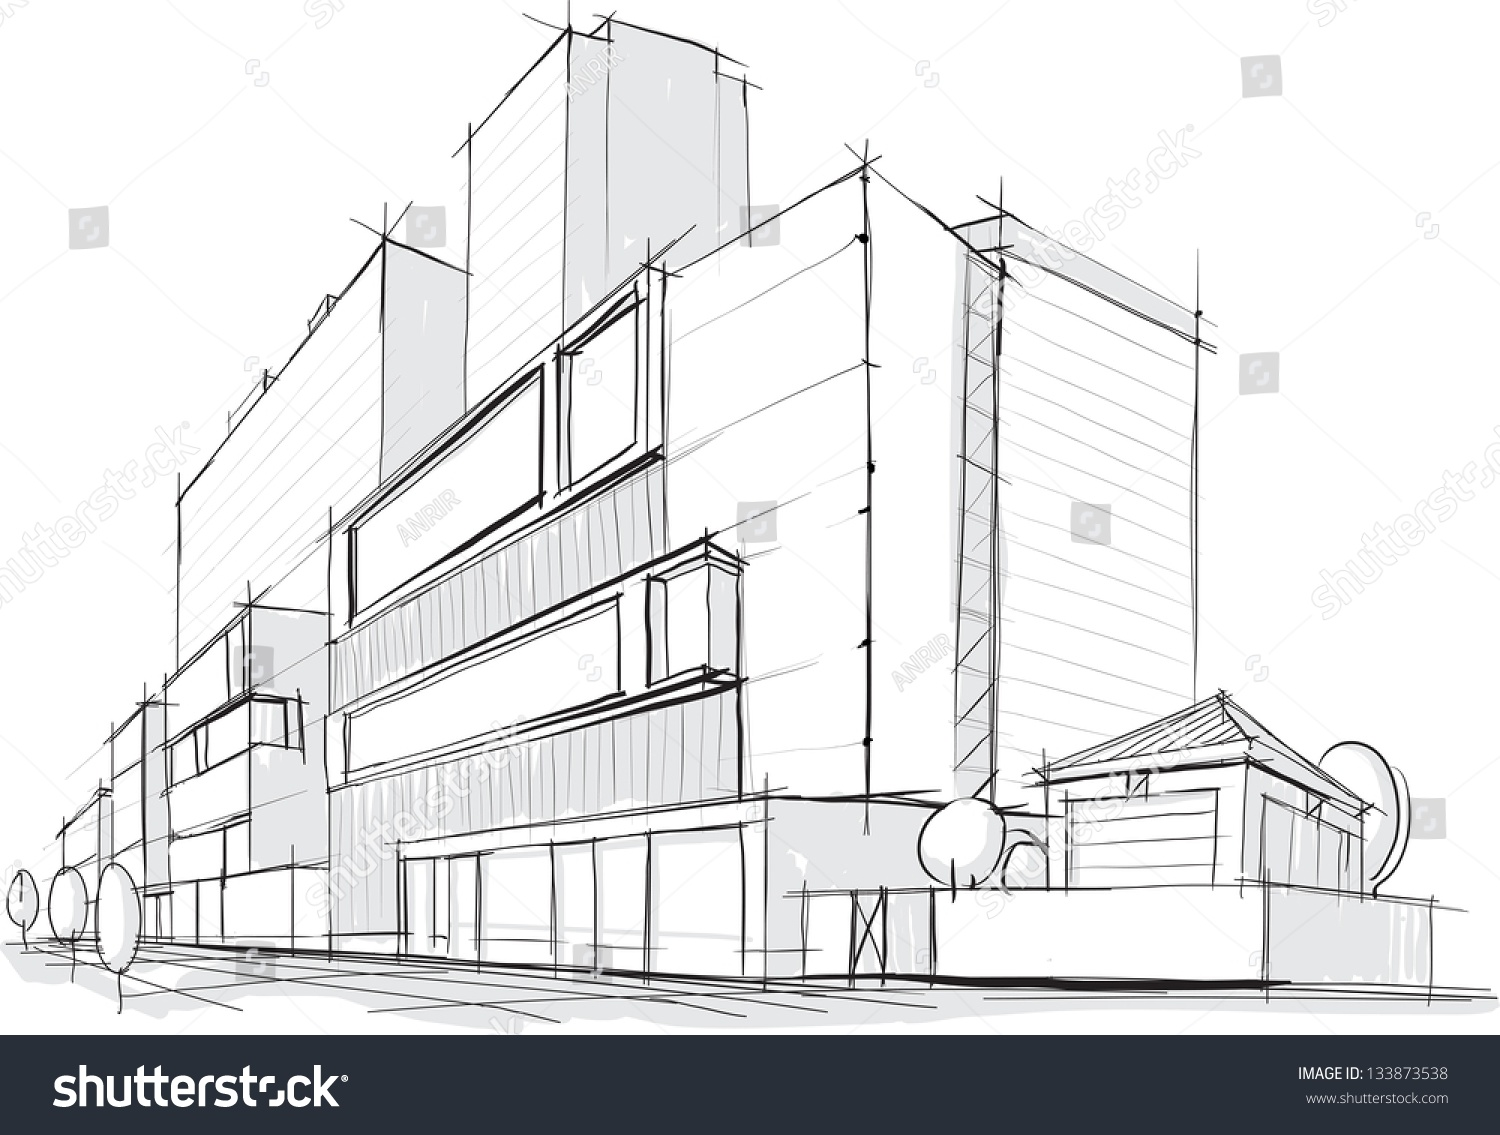 Architectural Sketch Stock Vector 133873538 : Shutterstock